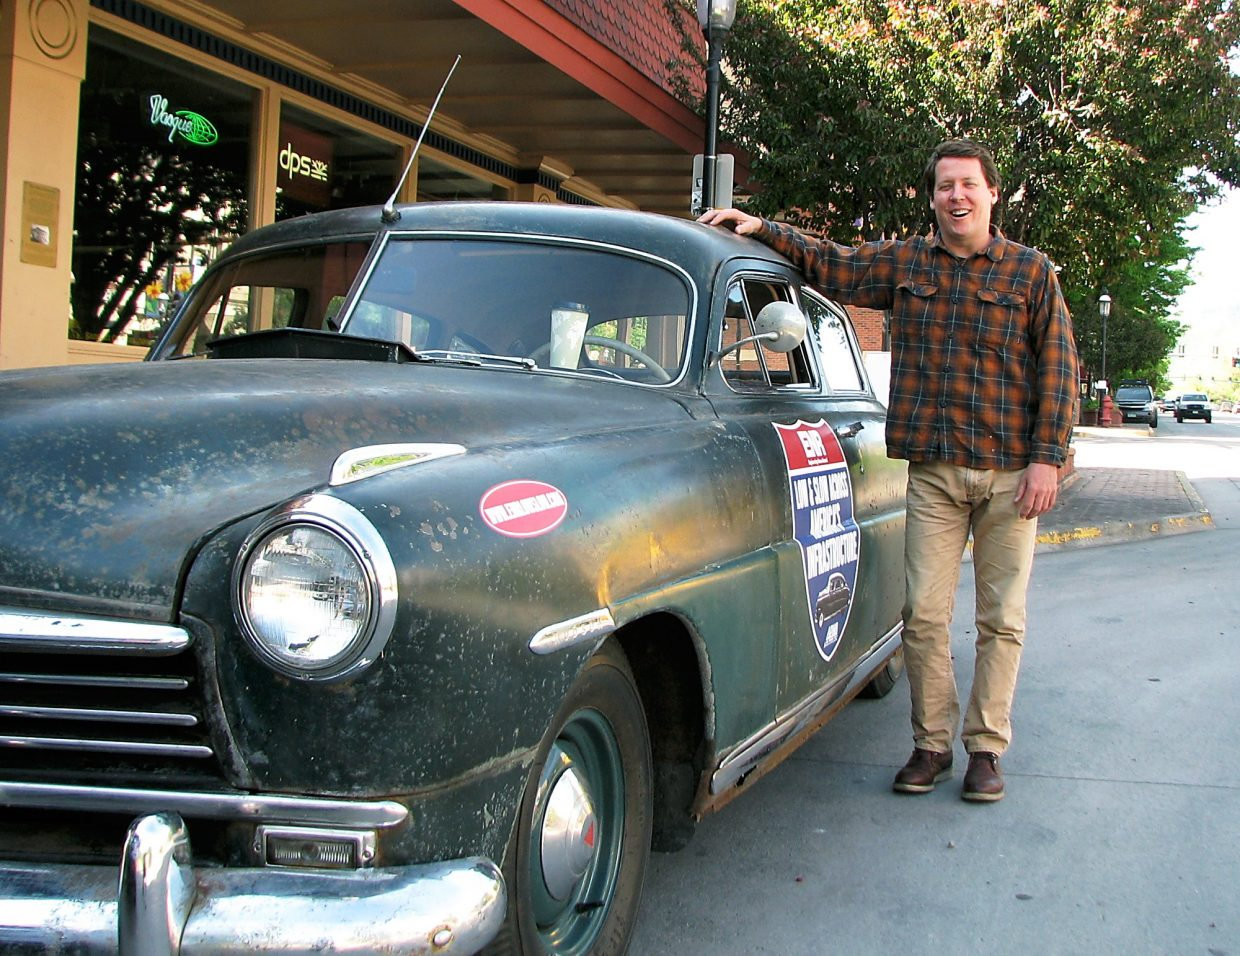 Dan McNichol, an author and freelance writer who is acting as a correspondent this summer for Engineering News-Record magazine, stands beside his 1949 Hudson,m which he bought for $3,500 on eBay. He was in Glenwood Springs on Wednesday morning on a cross-country trip with ENR editor Aileen Cho meant to examine and draw attention to the nation's crumbling infrastructure — which he says is roughly the age of the Hudson. The tour is called Low and Slow Across America's Infrastructure. McNichol and Cho met with Colorado Department of Transportation engineer Joe Elsen and local business people to learn about the Grand Avenue bridge.